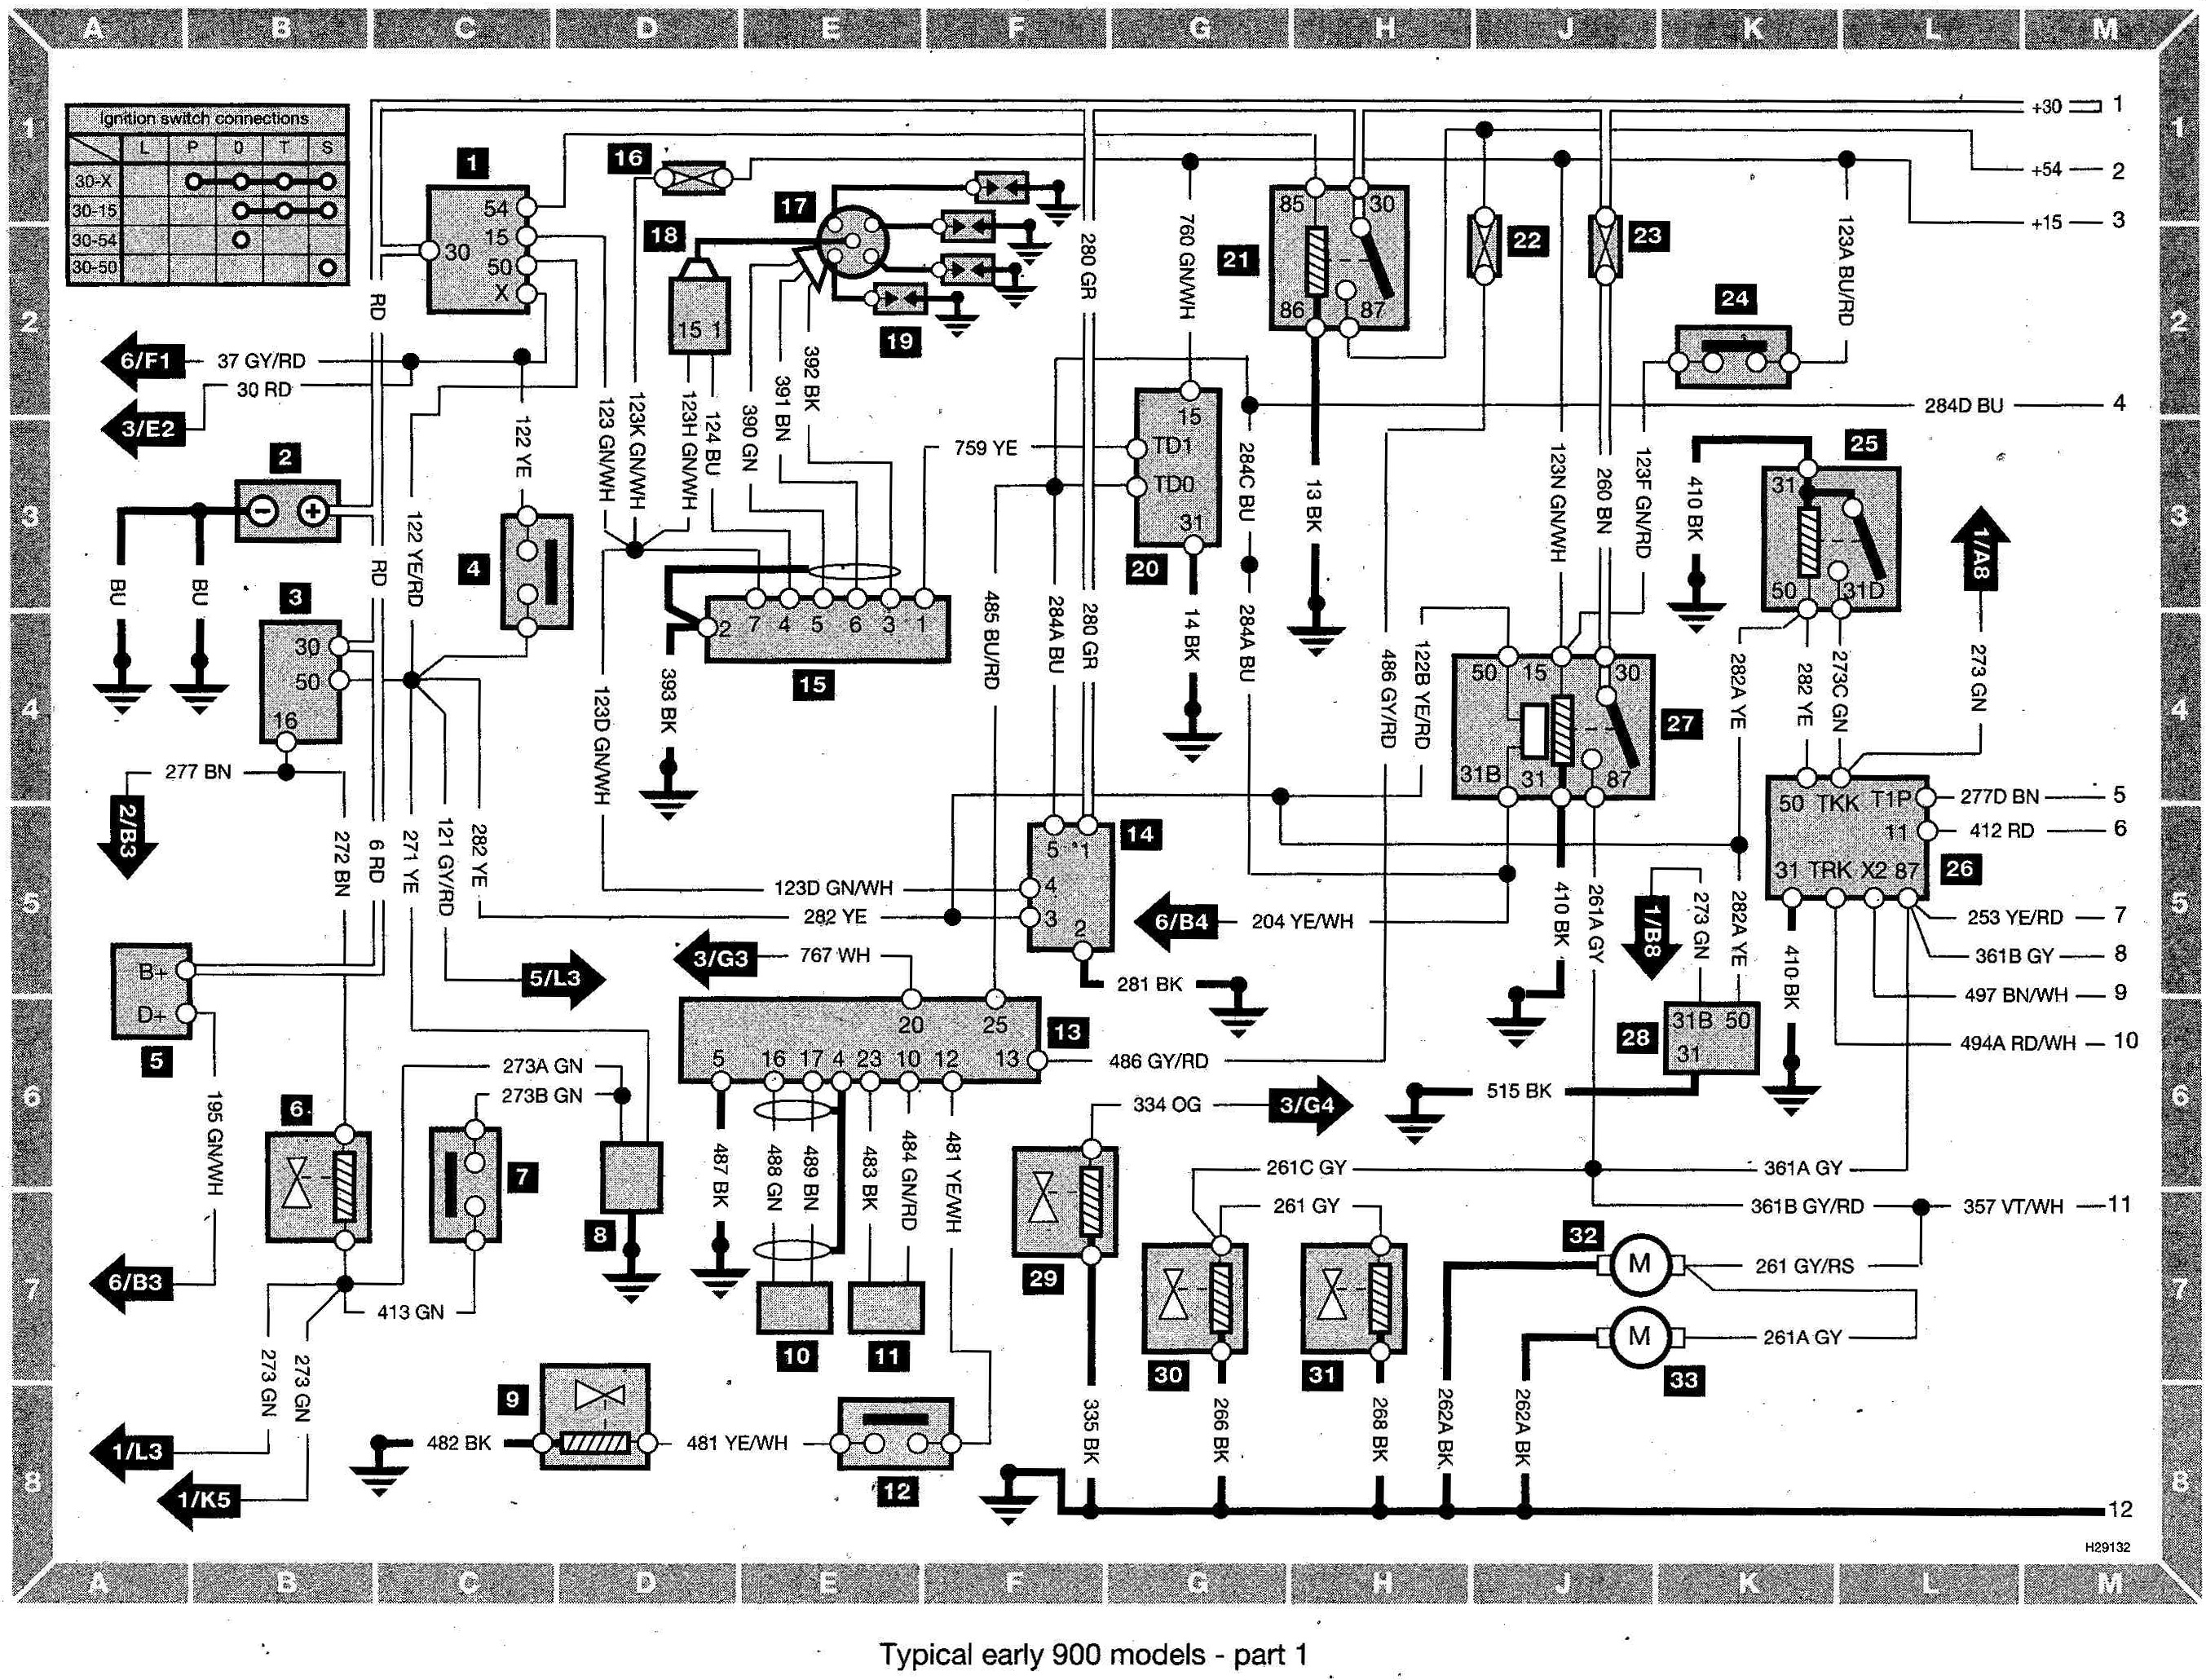 DIAGRAM] Apc Wiring Diagram 1984 Saab FULL Version HD Quality 1984 Saab -  SECONDARYWIRING.CONTOROCK.ITCONTO ROCK